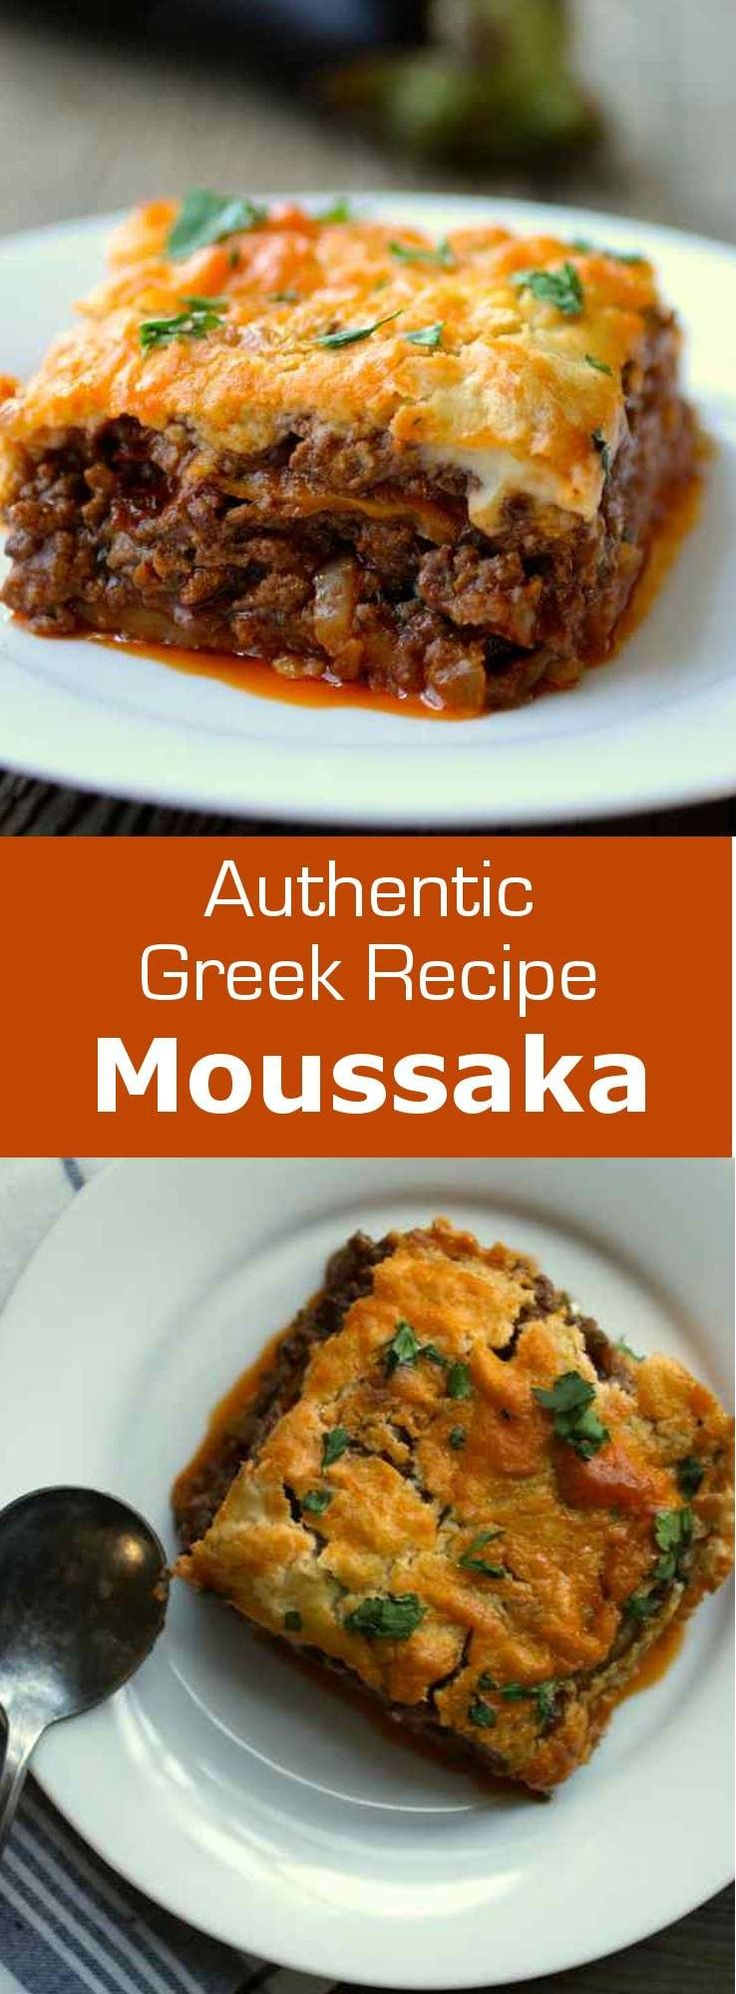 Moussaka is the iconic hearty Greek dish composed of layers of eggplants, saucy ground meat and topped with Béchamel sauce. #greek #196flavors